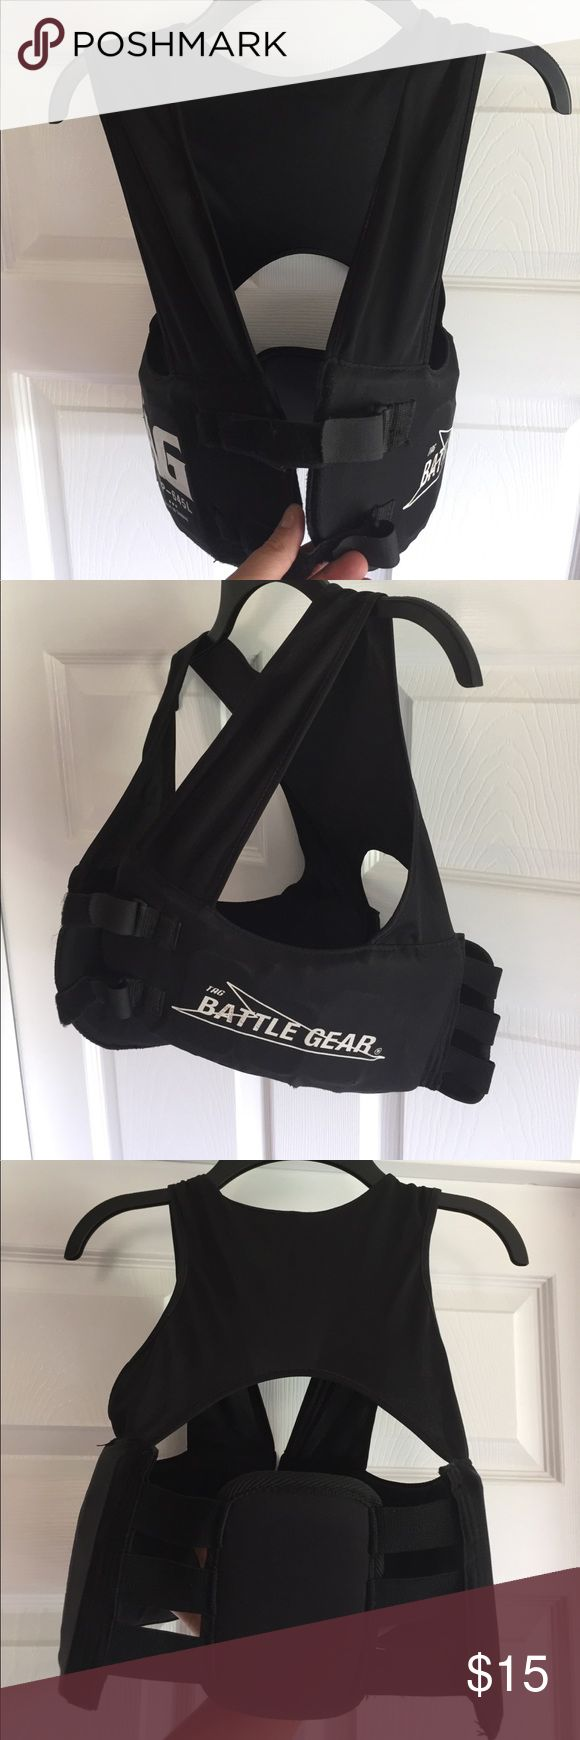 🏈Football Rib Protector Vest Tag Battle Gear Rob Protector Vest. Has normal signs of use after playing football 3yrs. My son was QB in high school and my husband bought this for those rough QB sacks at times. Still has some life to it and works great. As shown in last 2 pics has some tears and can probably be sewn. Accessories